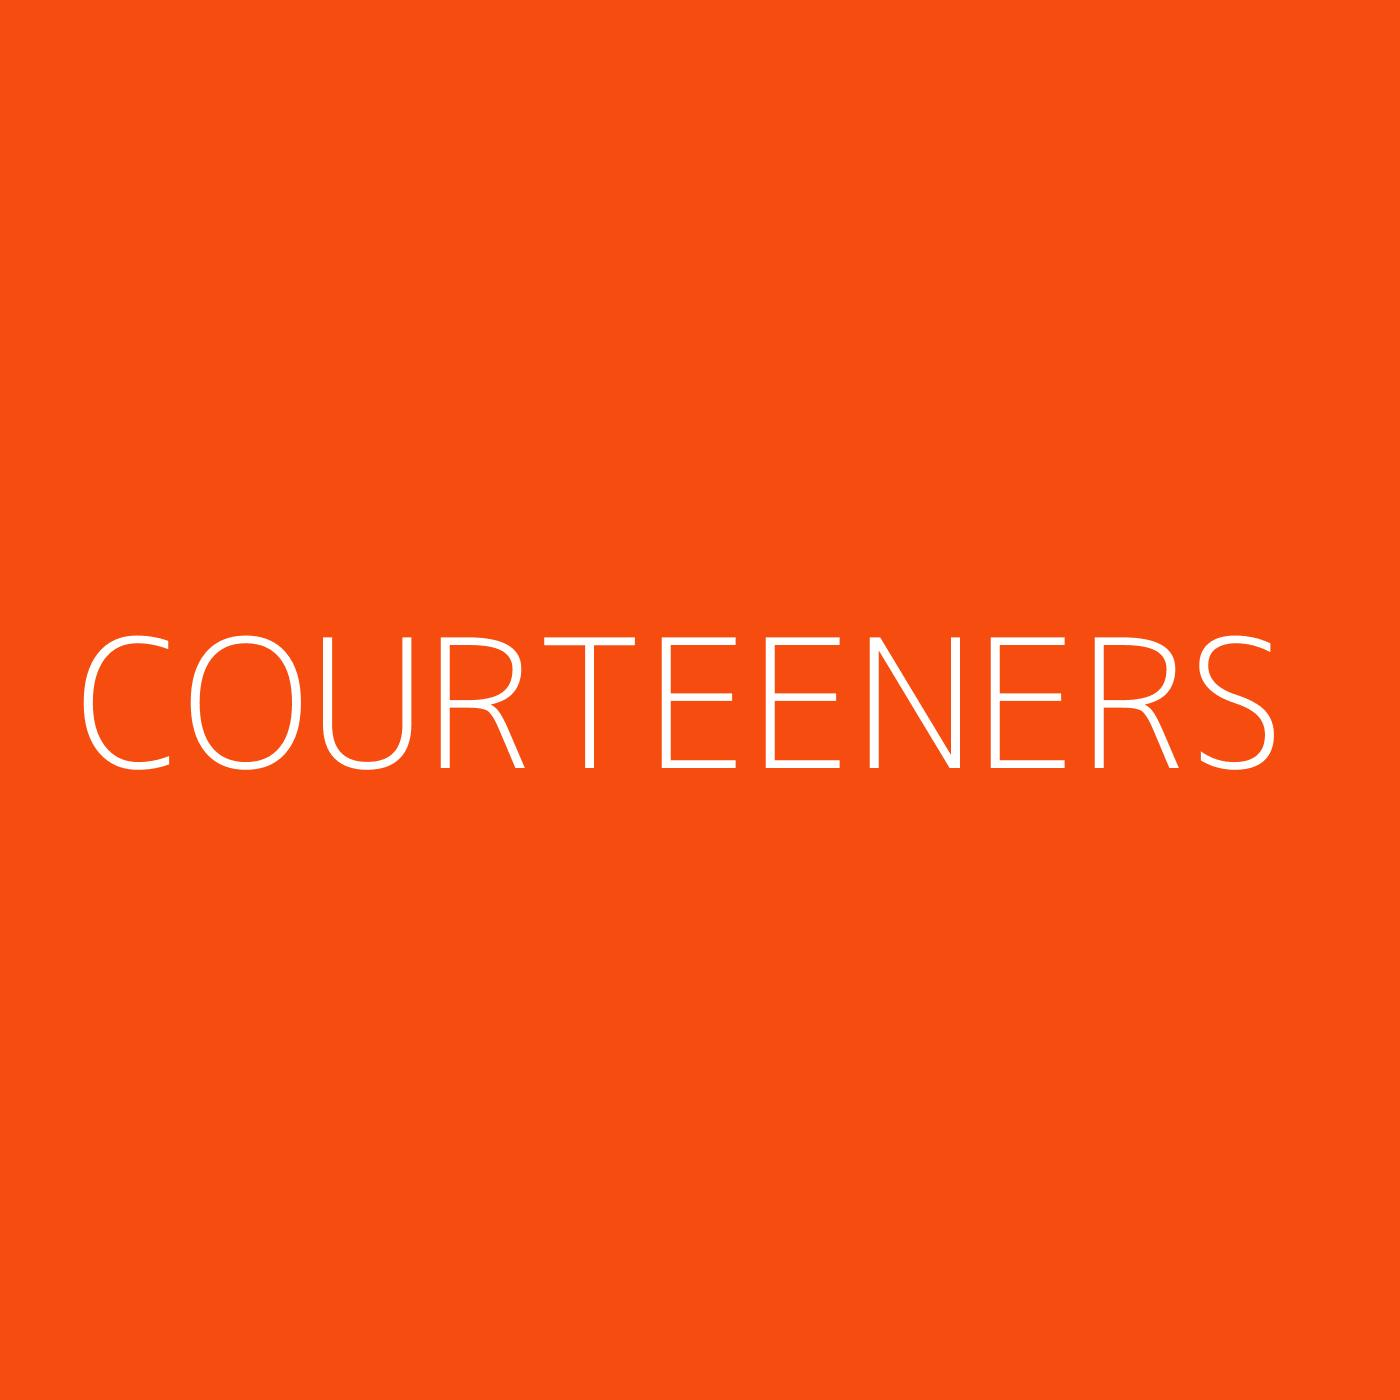 Courteeners Playlist Artwork